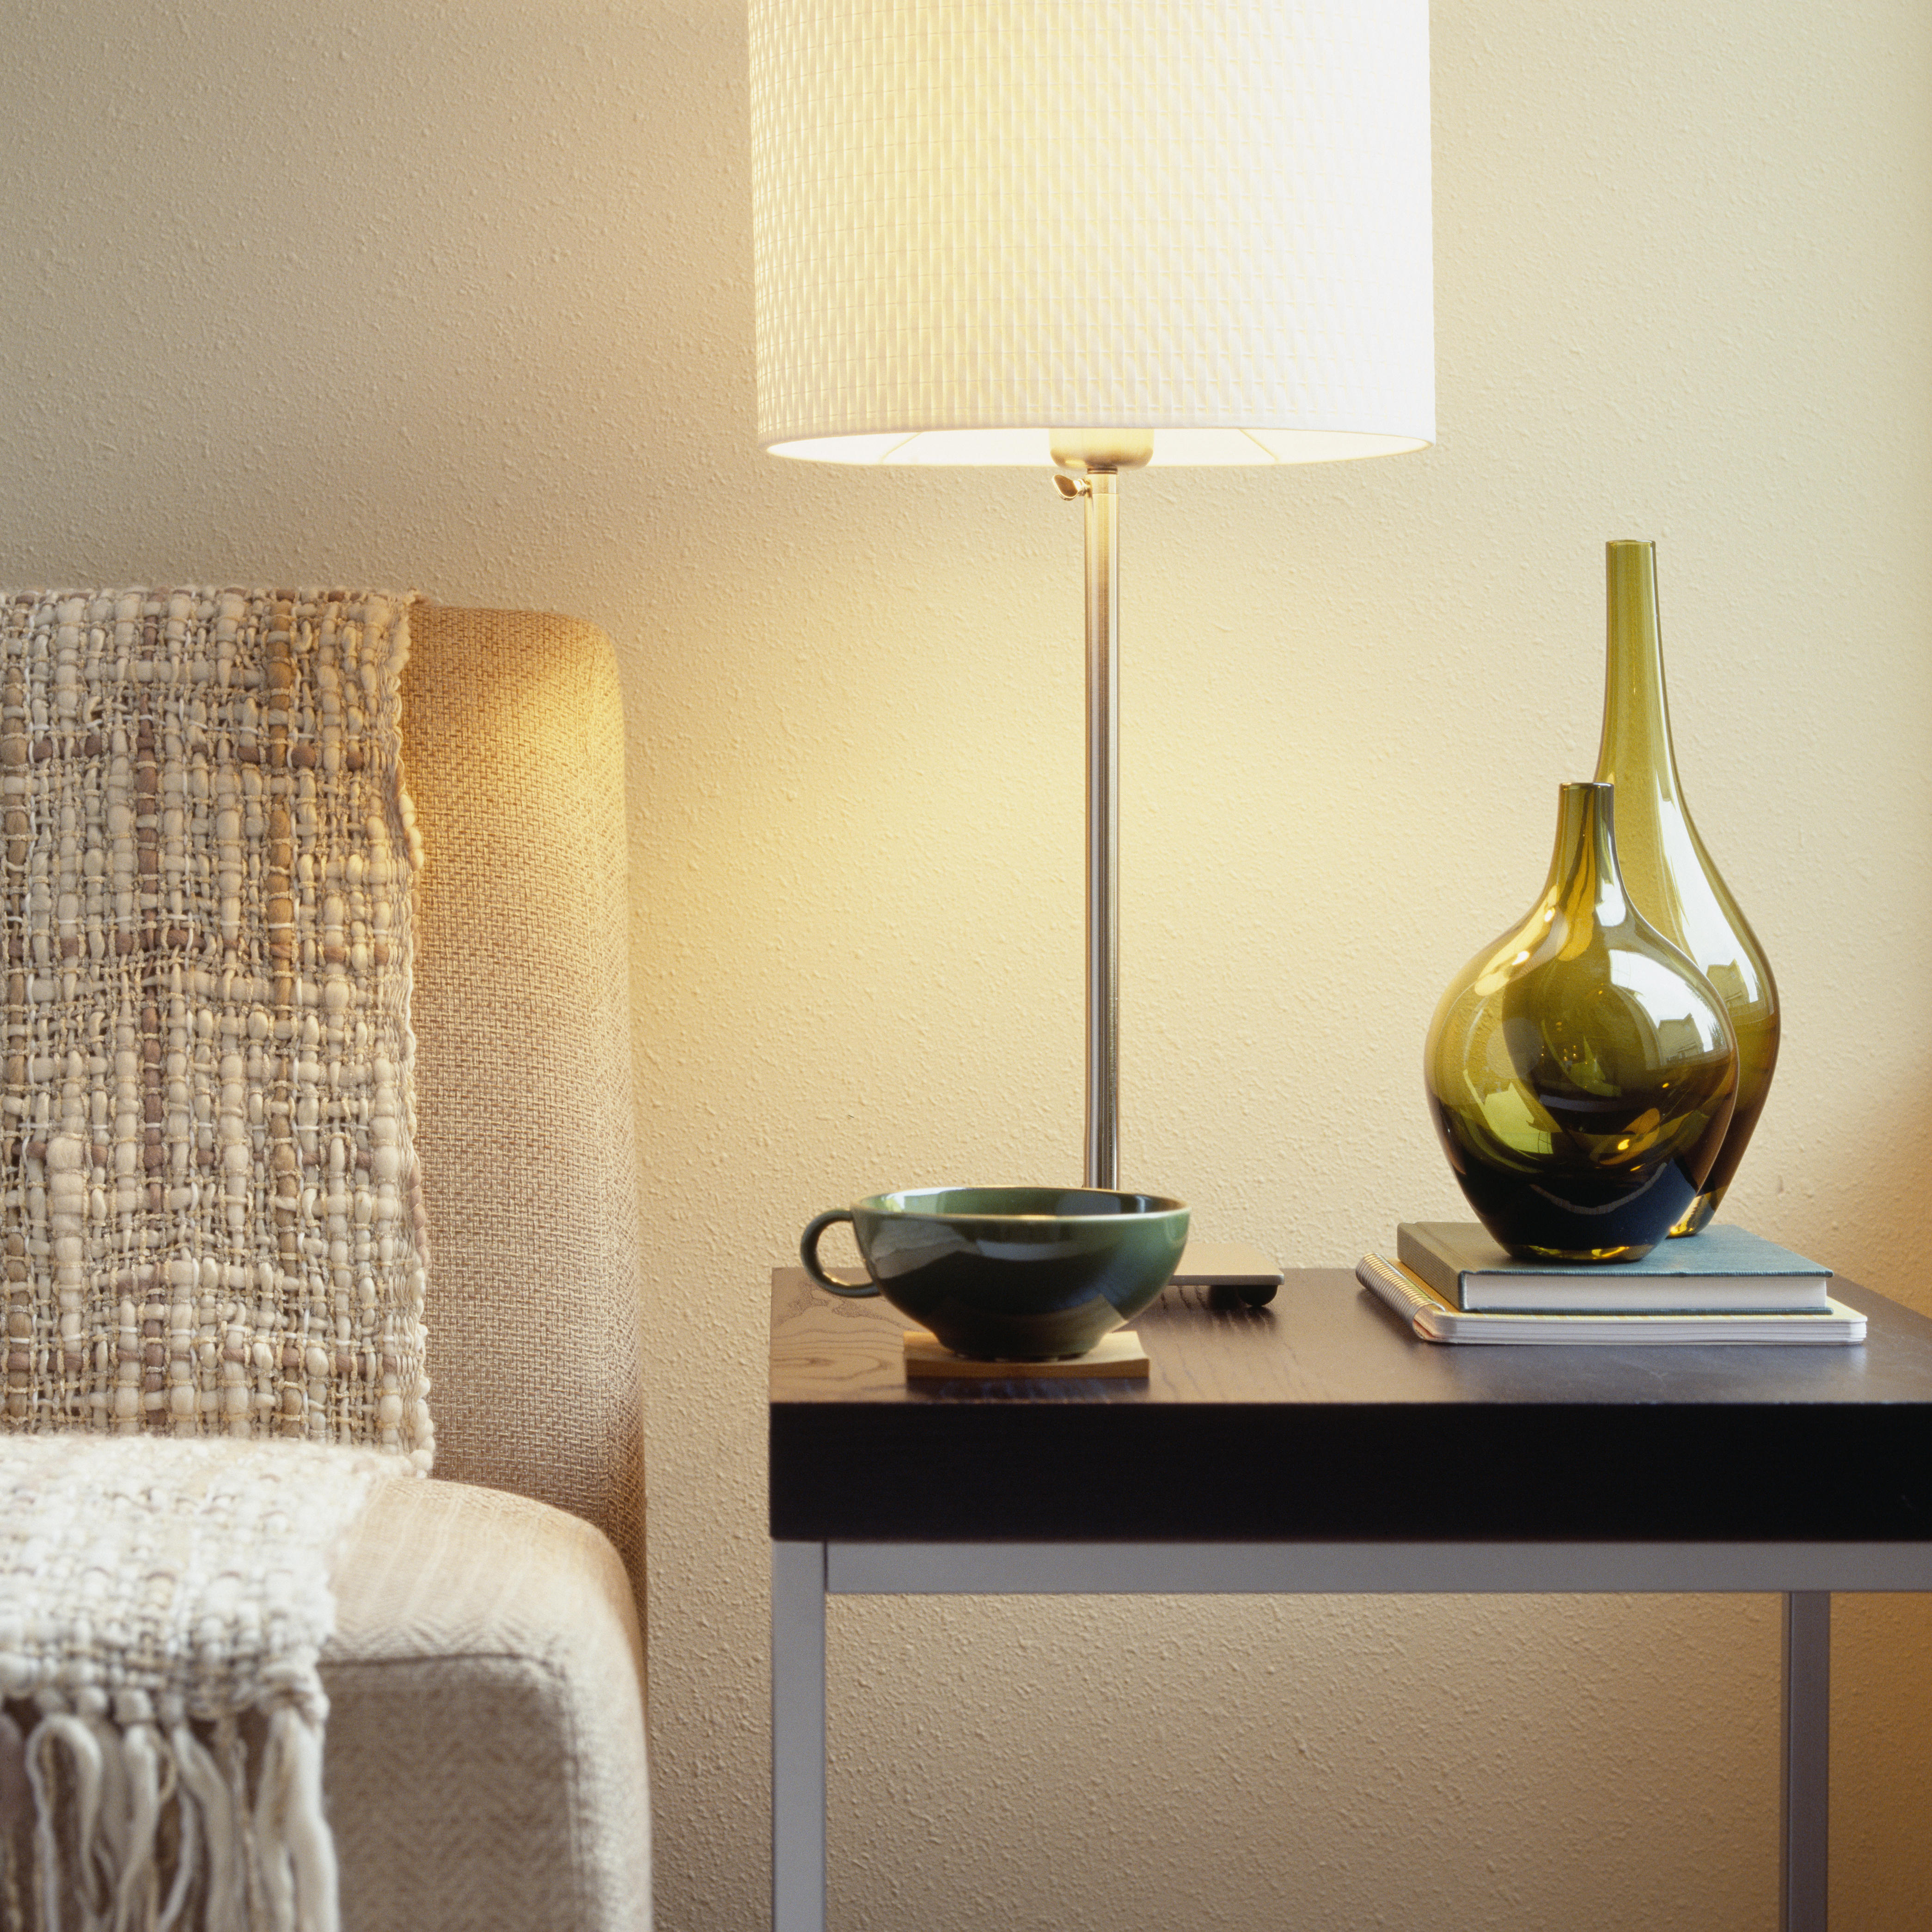 Lamp on table in living room